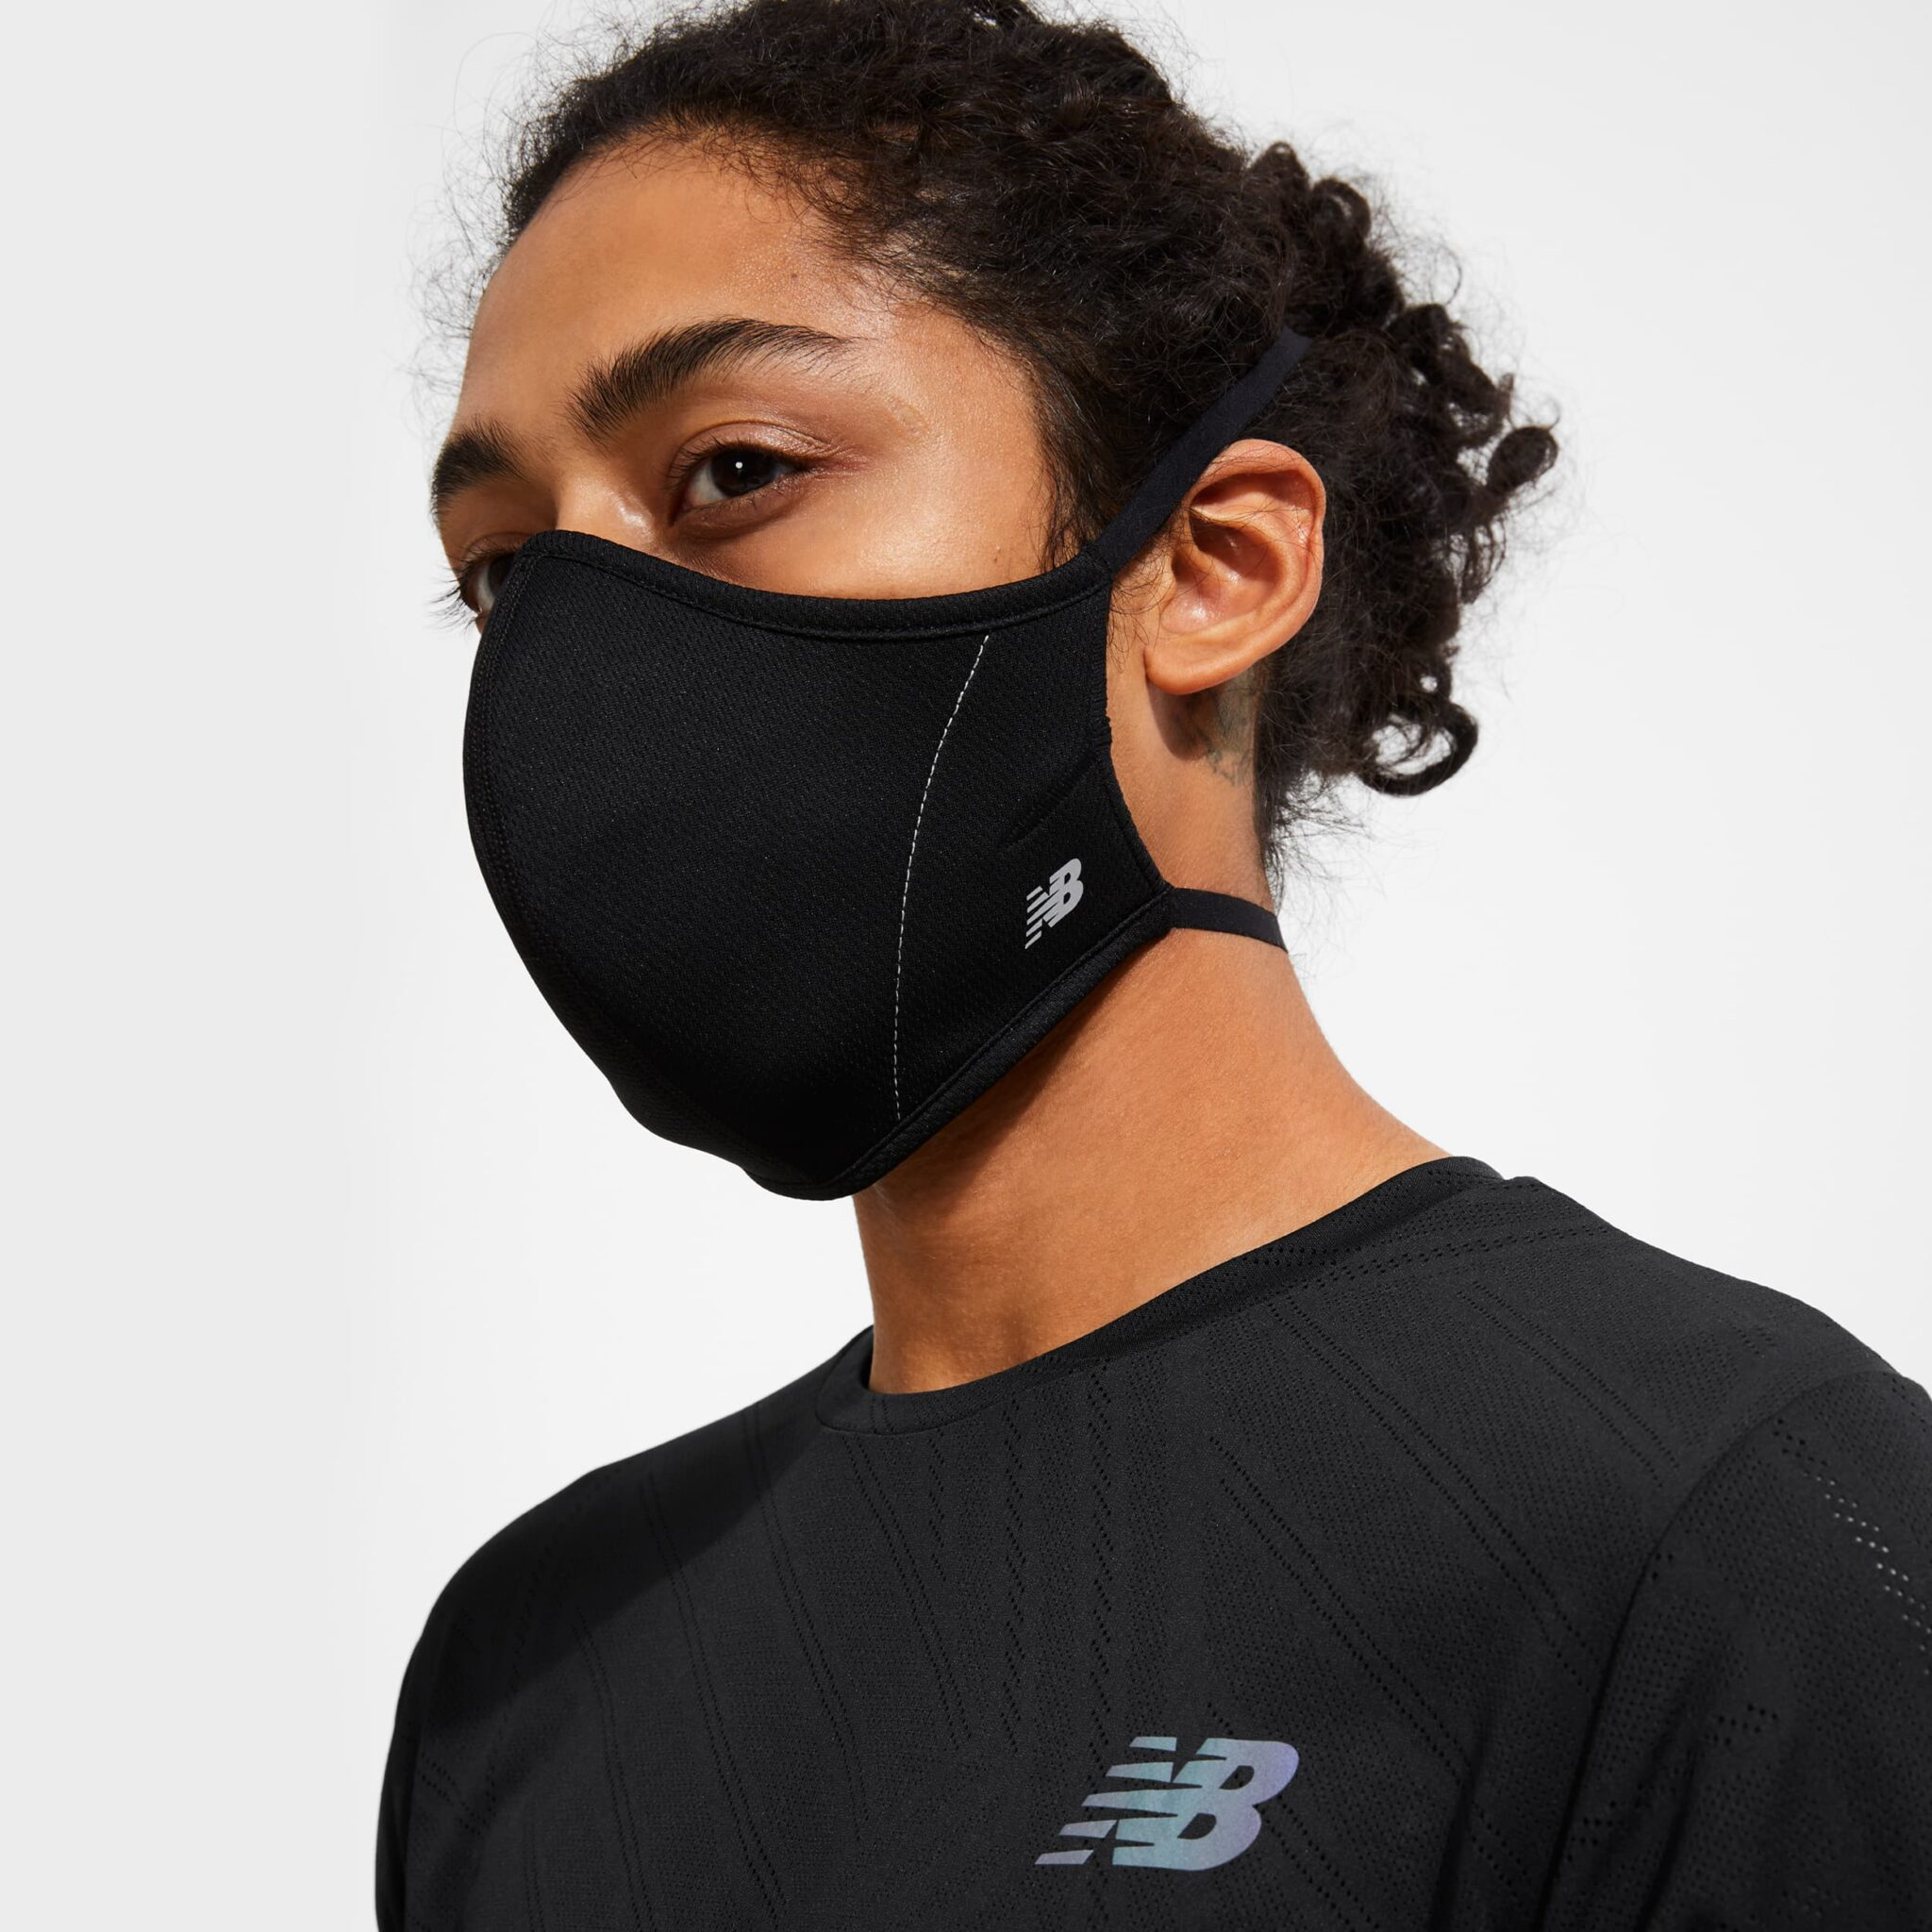 New Balance Releases A New Performance Mask